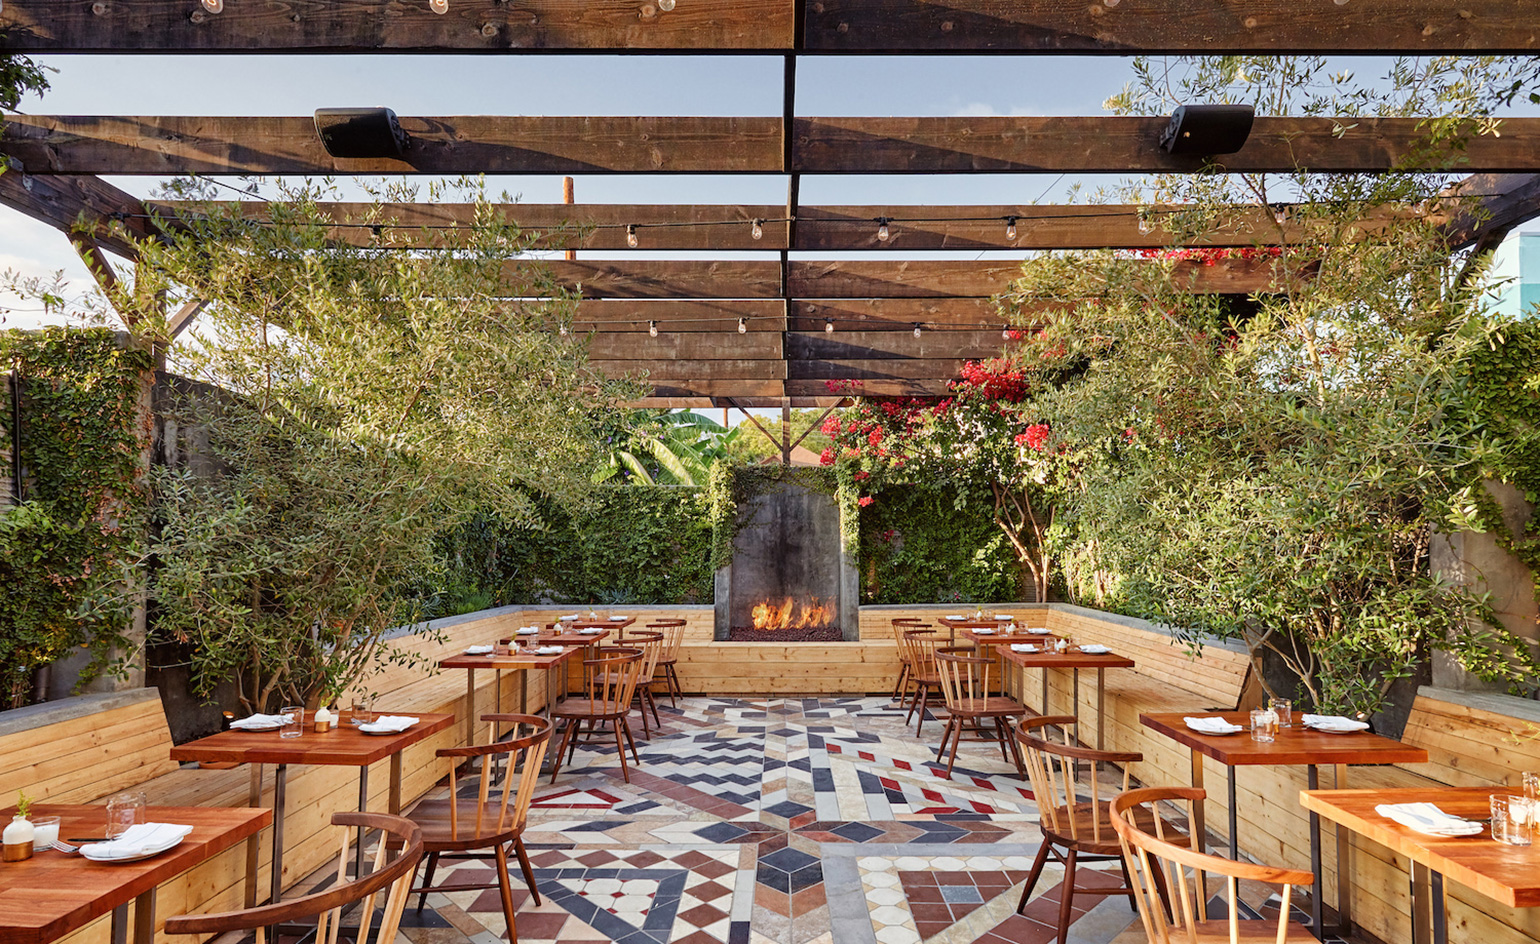 Best Restaurant Decor Los Angeles : The best los angeles restaurants for californian cuisine